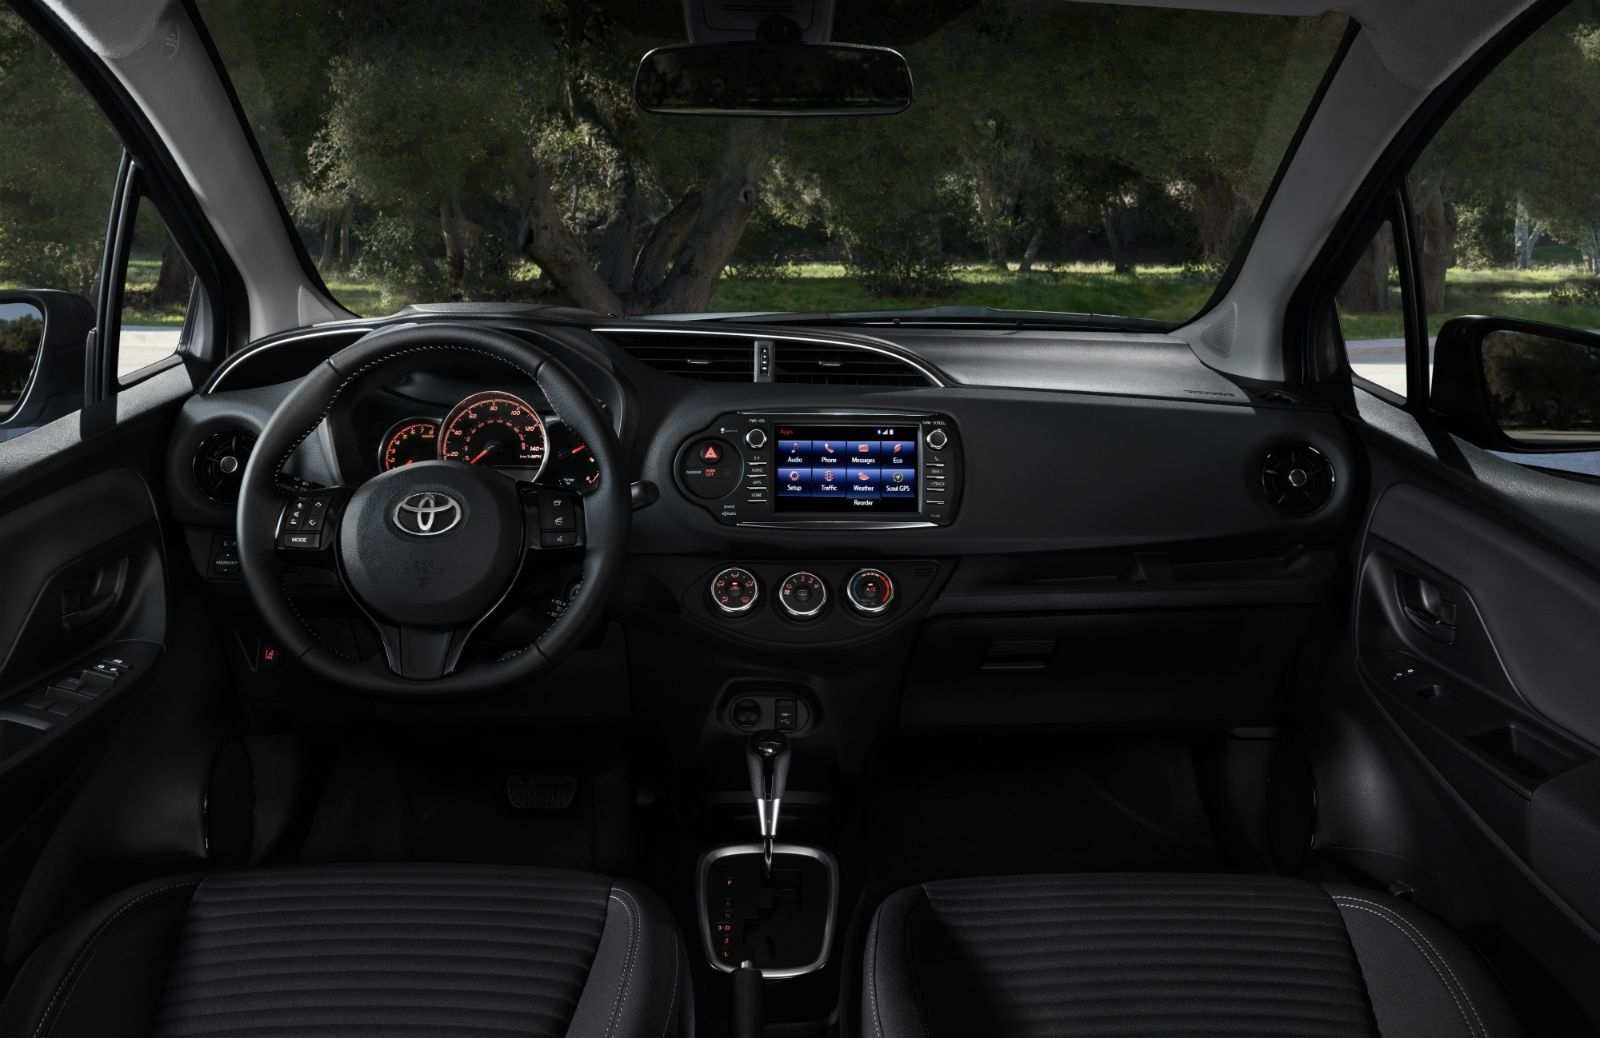 39 Gallery of Toyota Yaris 2019 Europe Specs with Toyota Yaris 2019 Europe